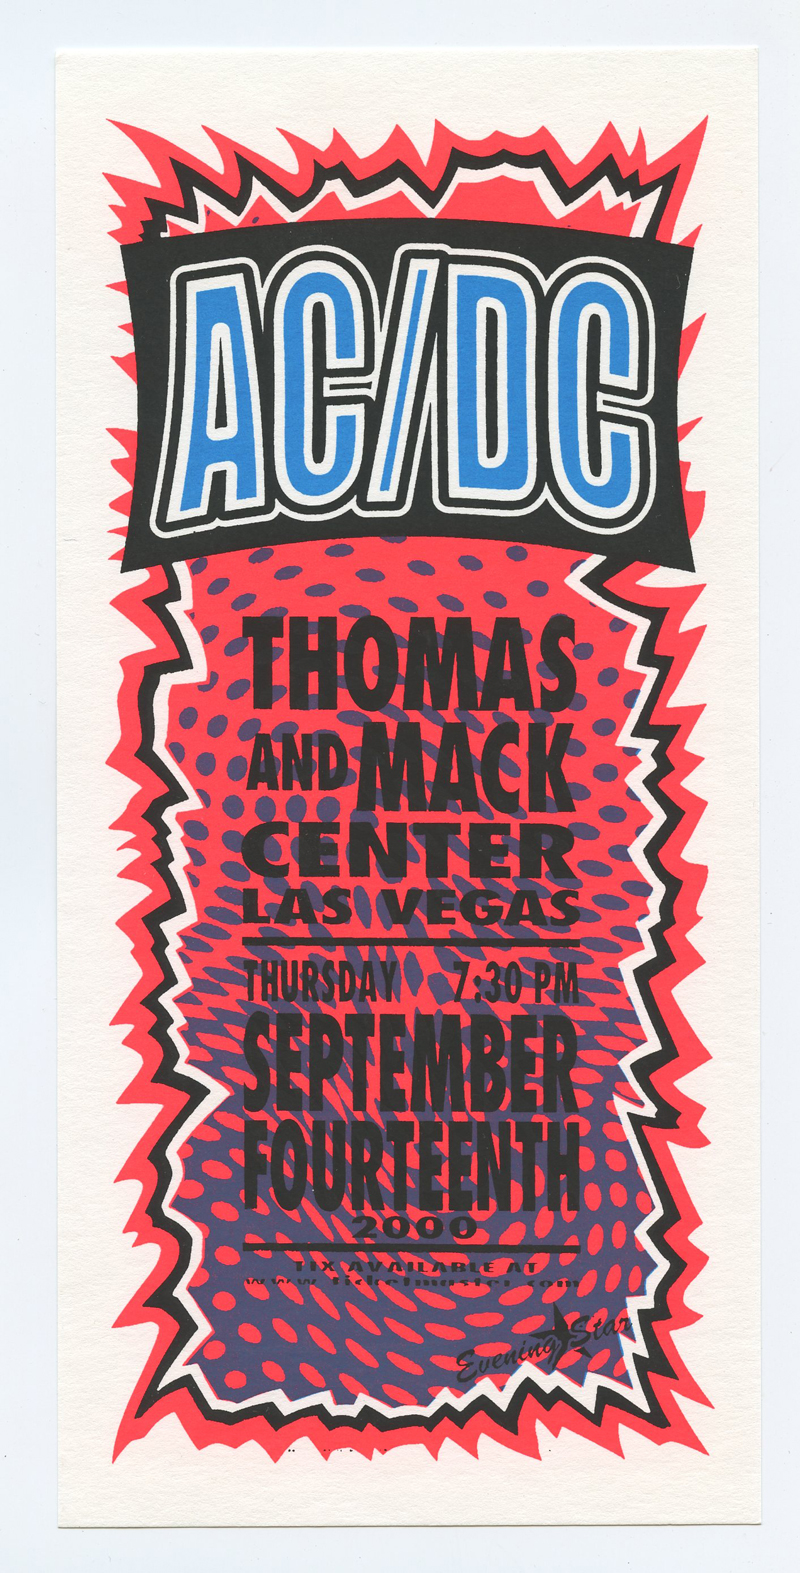 AC/DC Handbill 2000 Sep 4 Thomas and Mac Center Las Vegas Mark Arminski